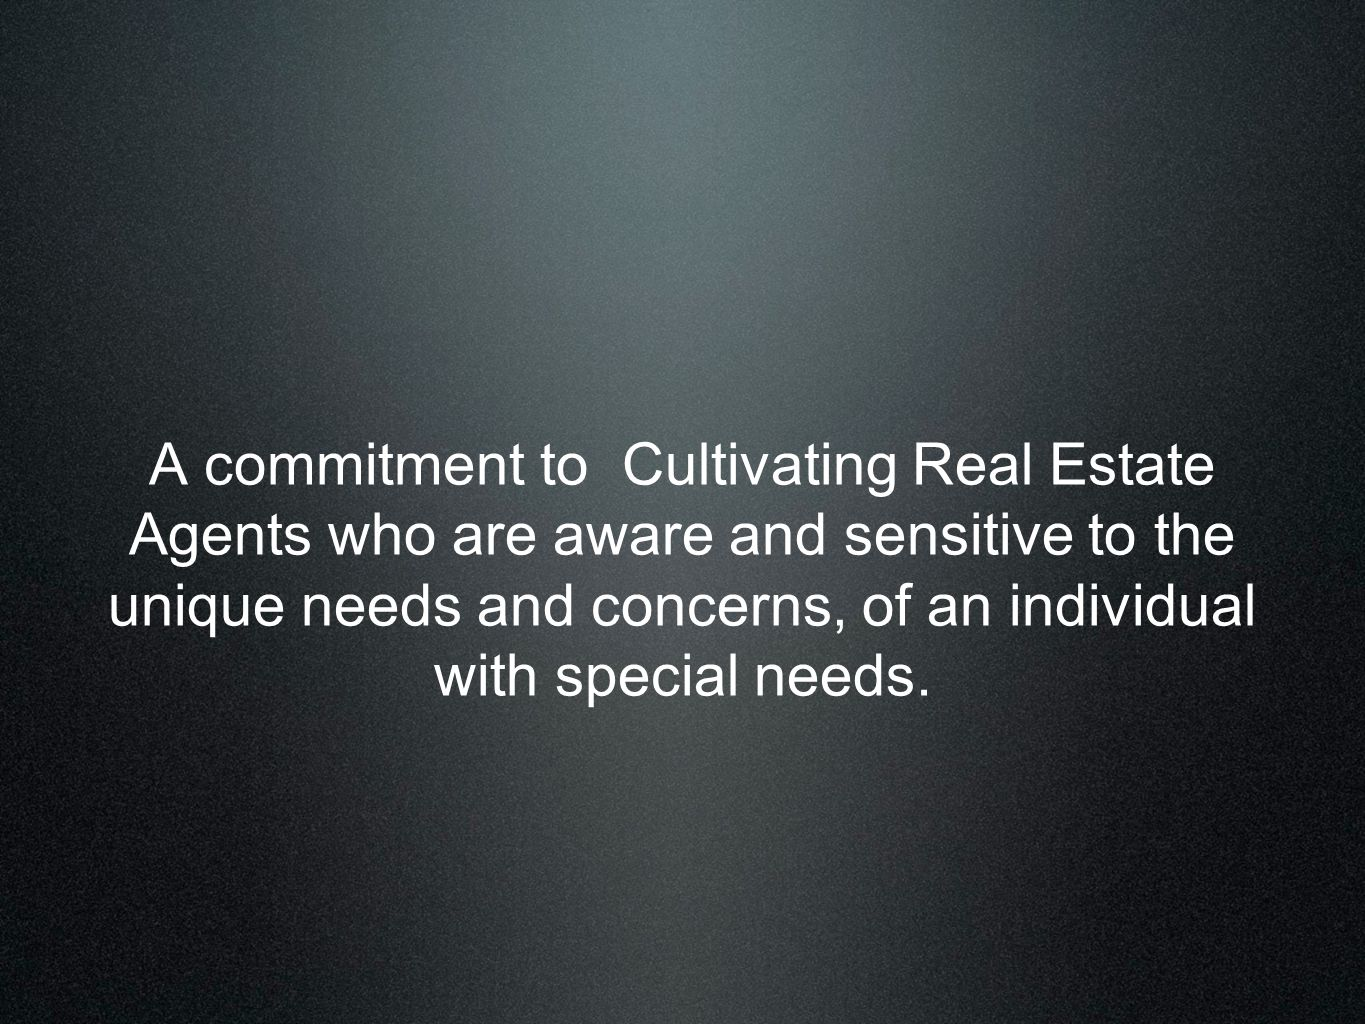 A commitment to Cultivating Real Estate Agents who are aware and sensitive to the unique needs and concerns, of an individual with special needs.